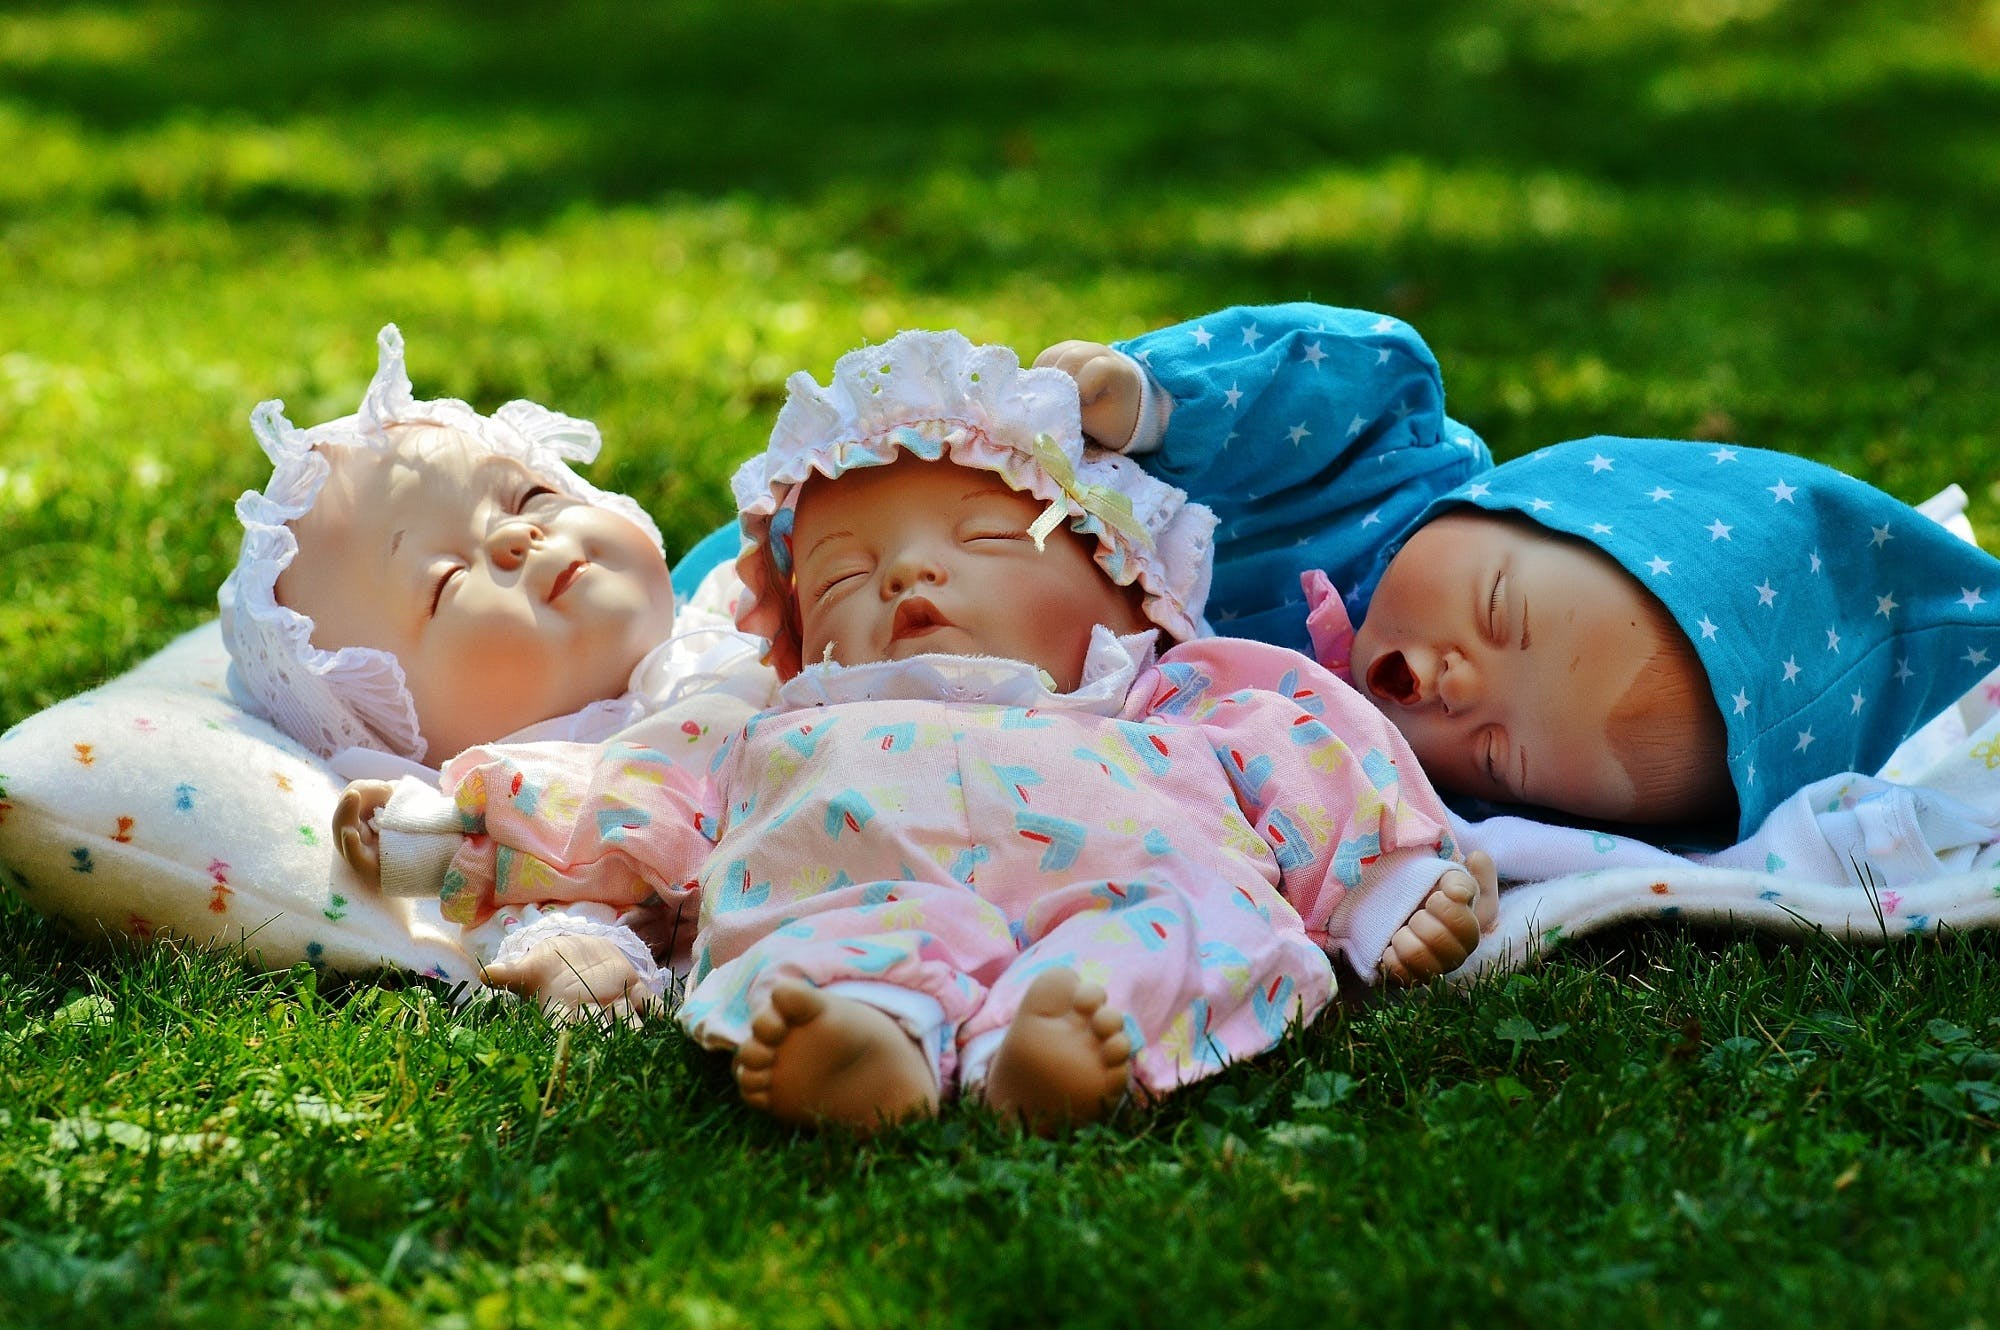 3 Baby's Sleeping during Daytime